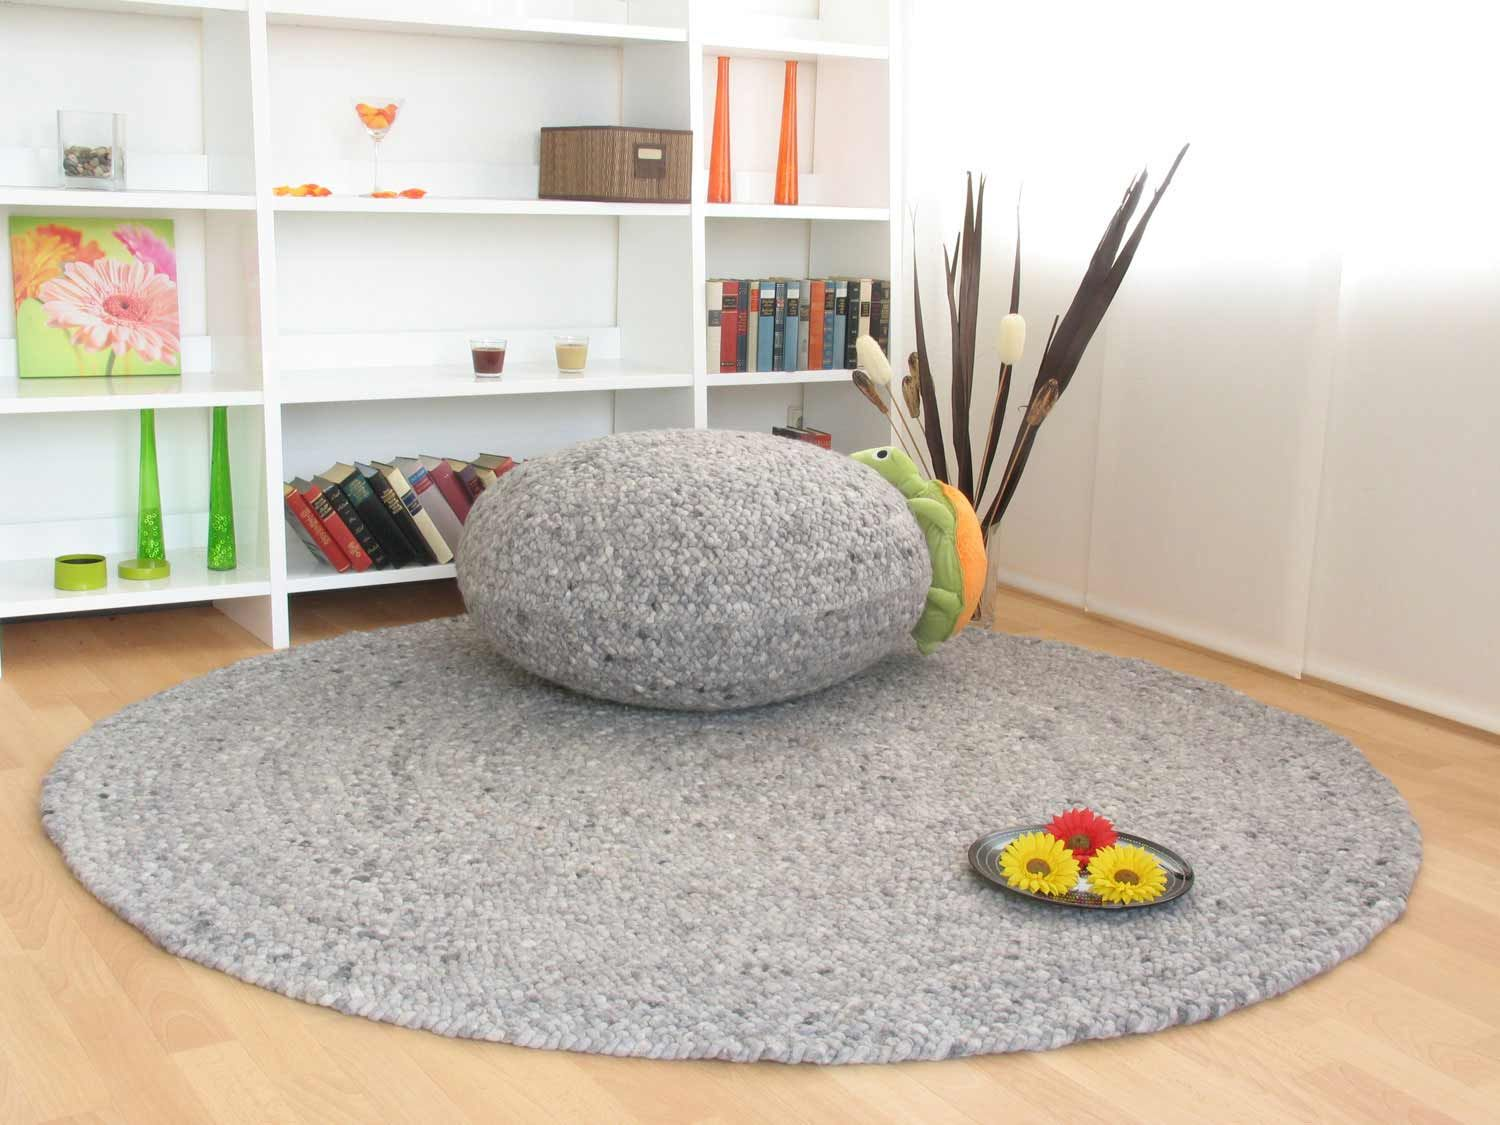 Handweb Teppich Bolero | global-carpet if possible with the seating cushion